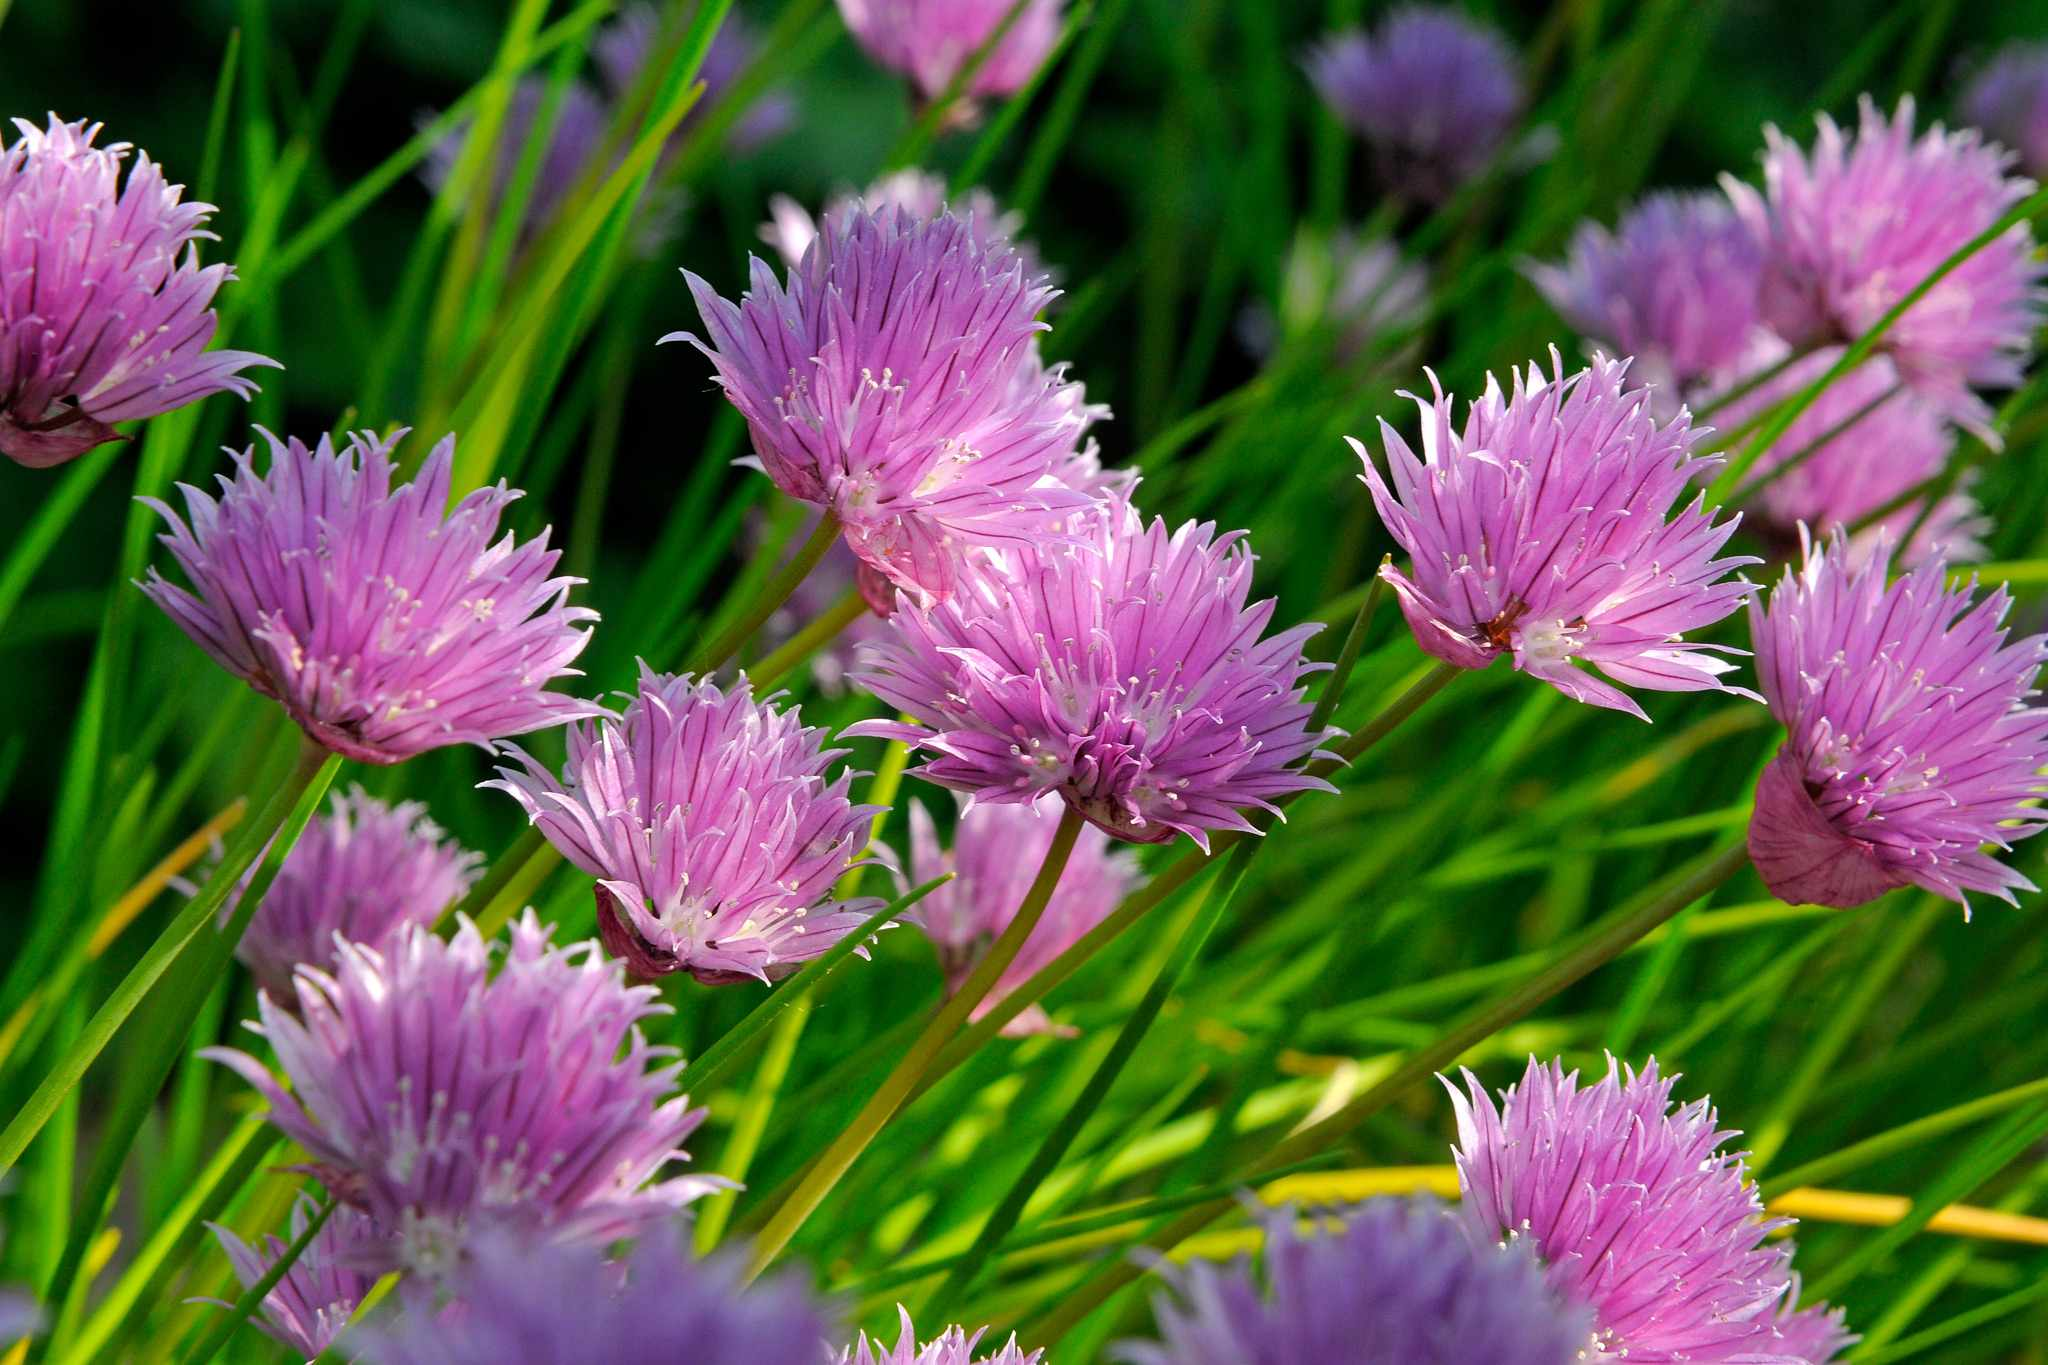 How to rejuvenate chives